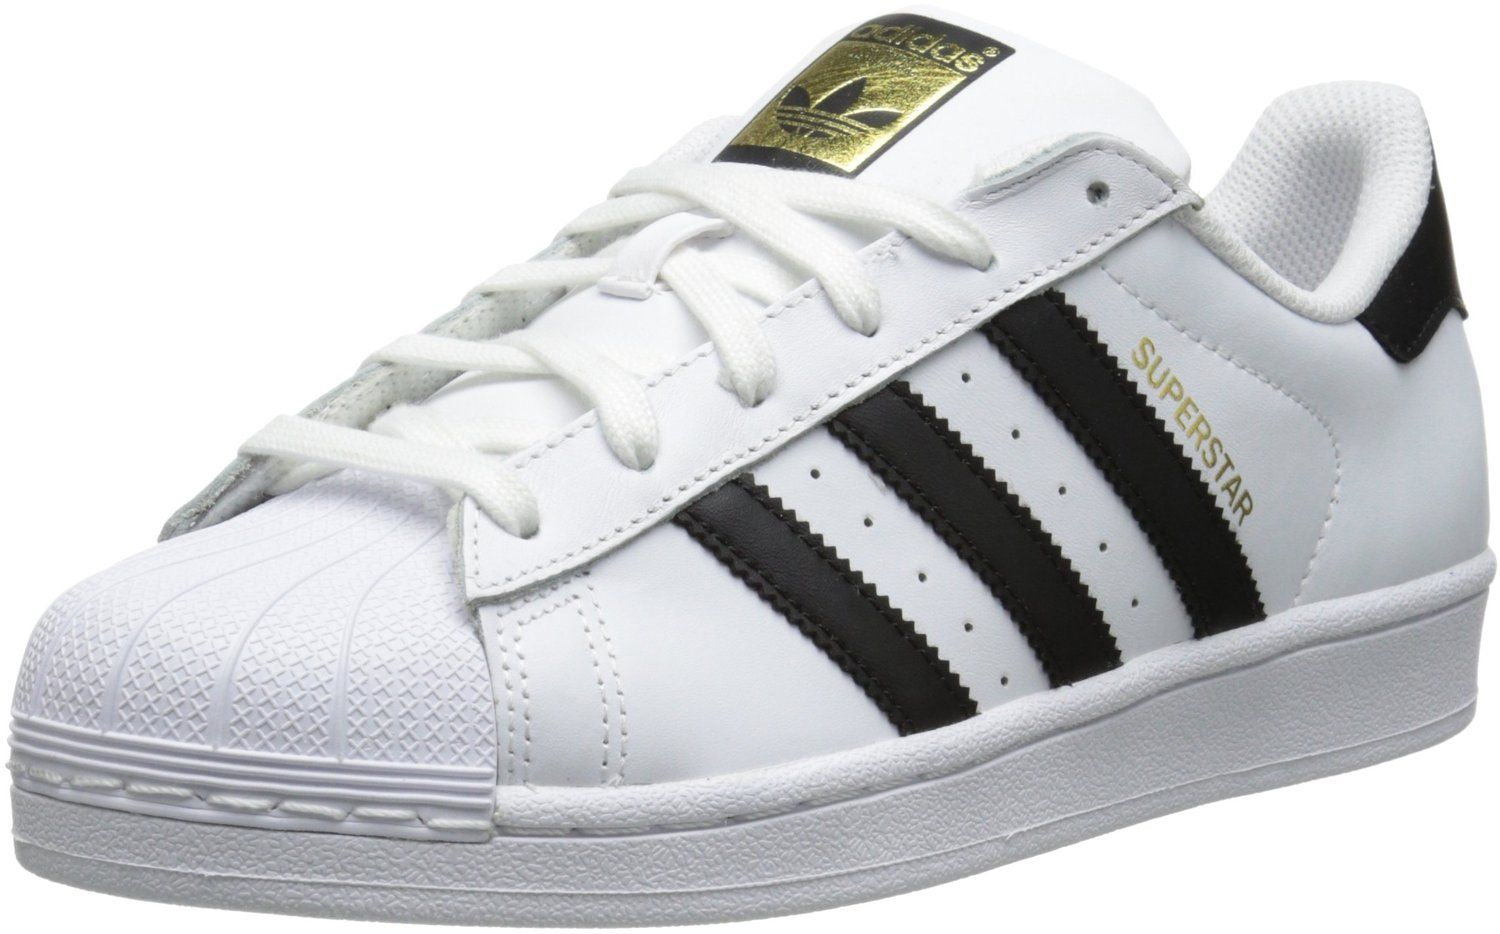 Adidas Superstar Sneakers - Bust out the RUN DMC!  706a7ad52